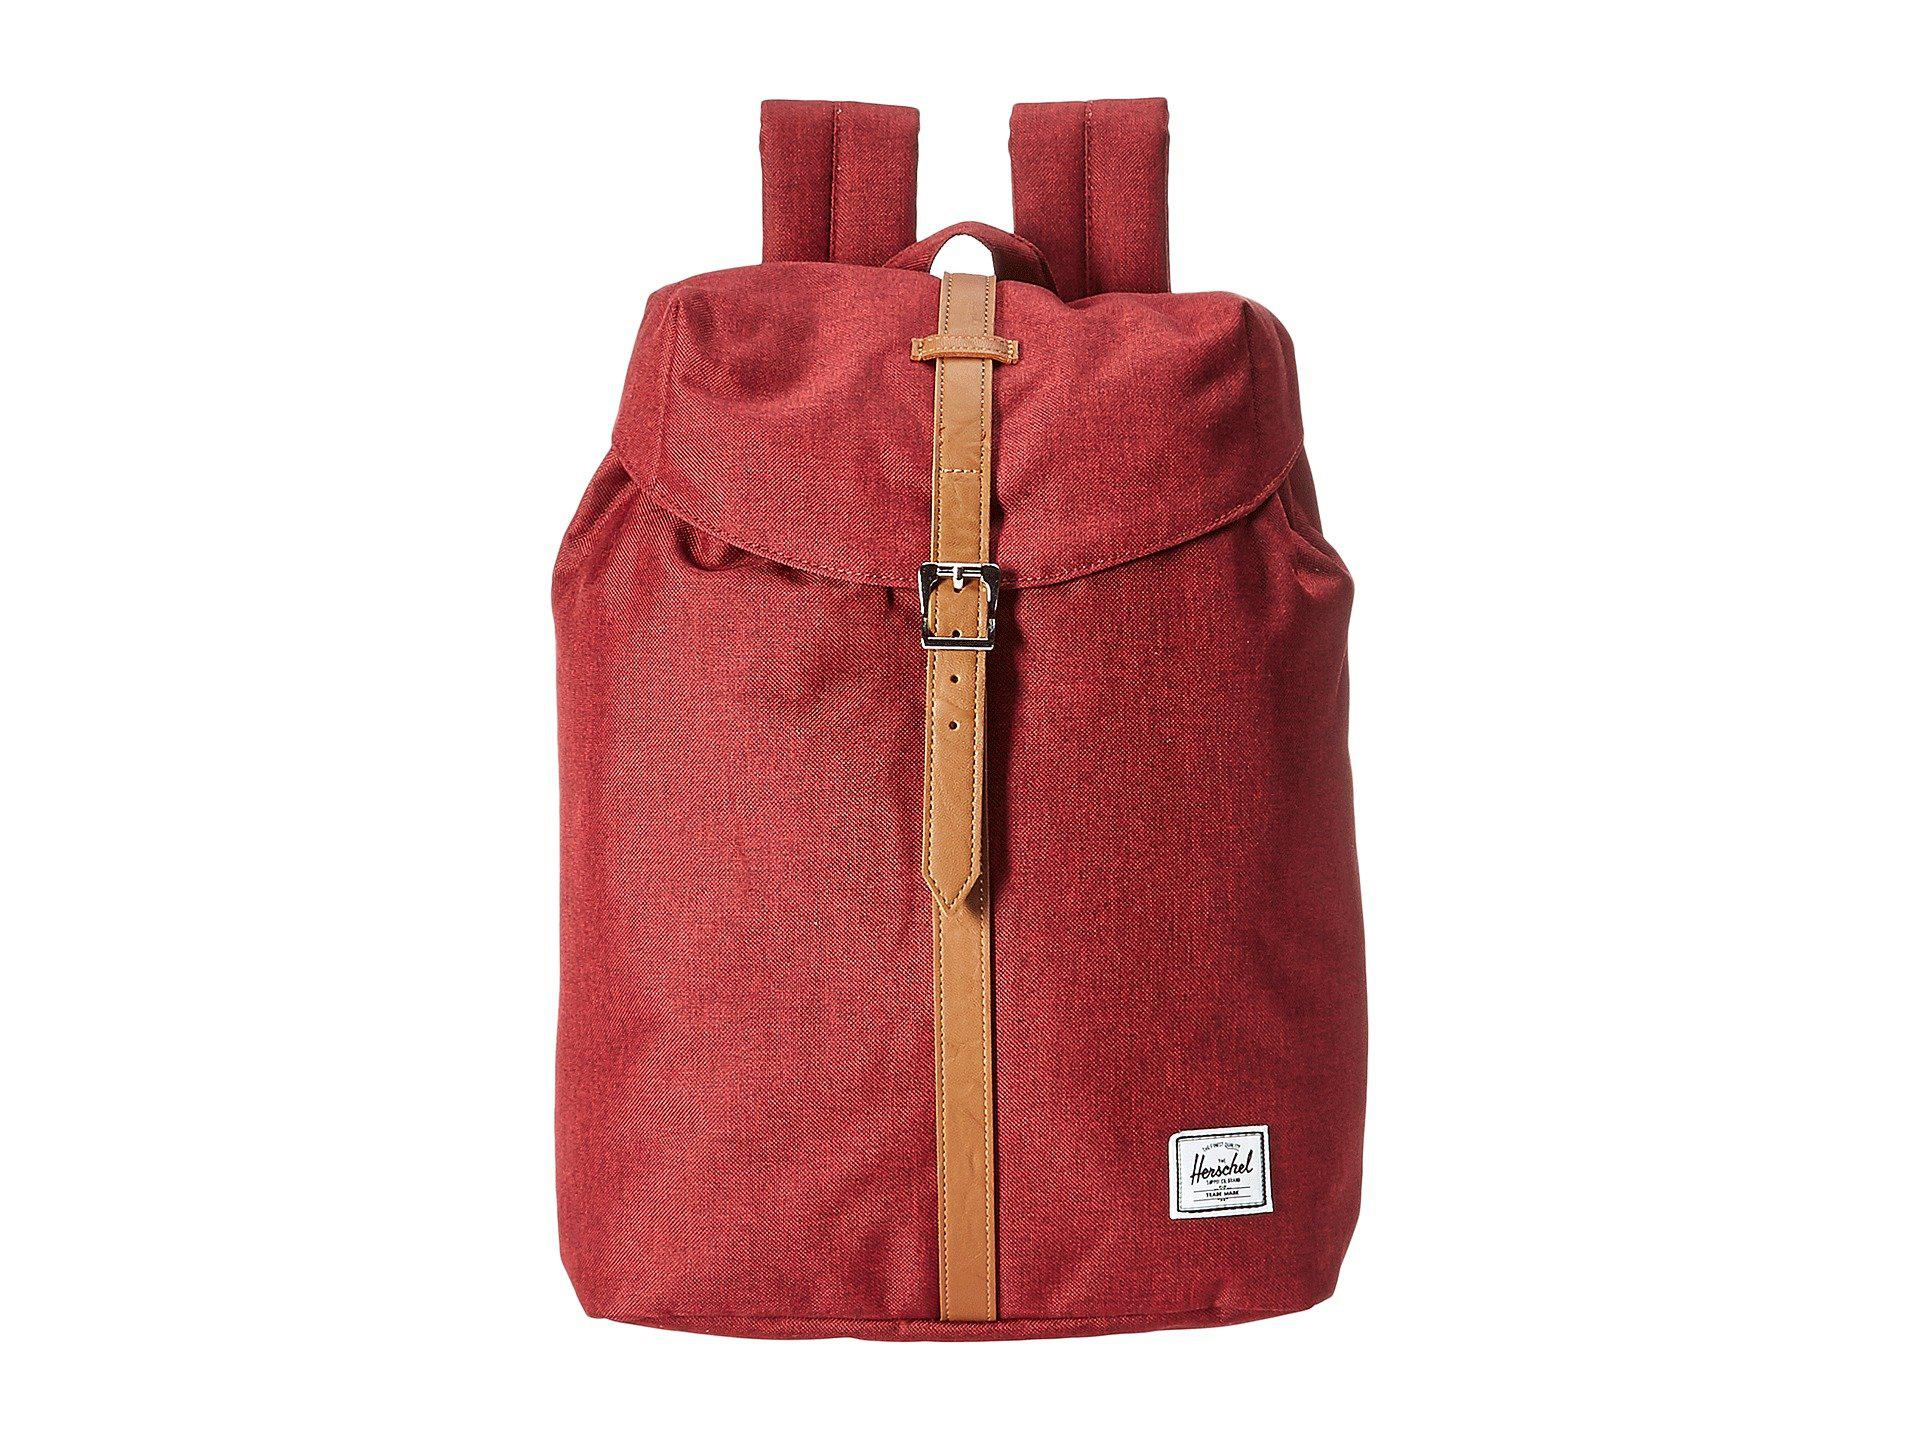 Lyst - Herschel Supply Co. Post (winetasting Crosshatch tan ... 128d463bfe11a